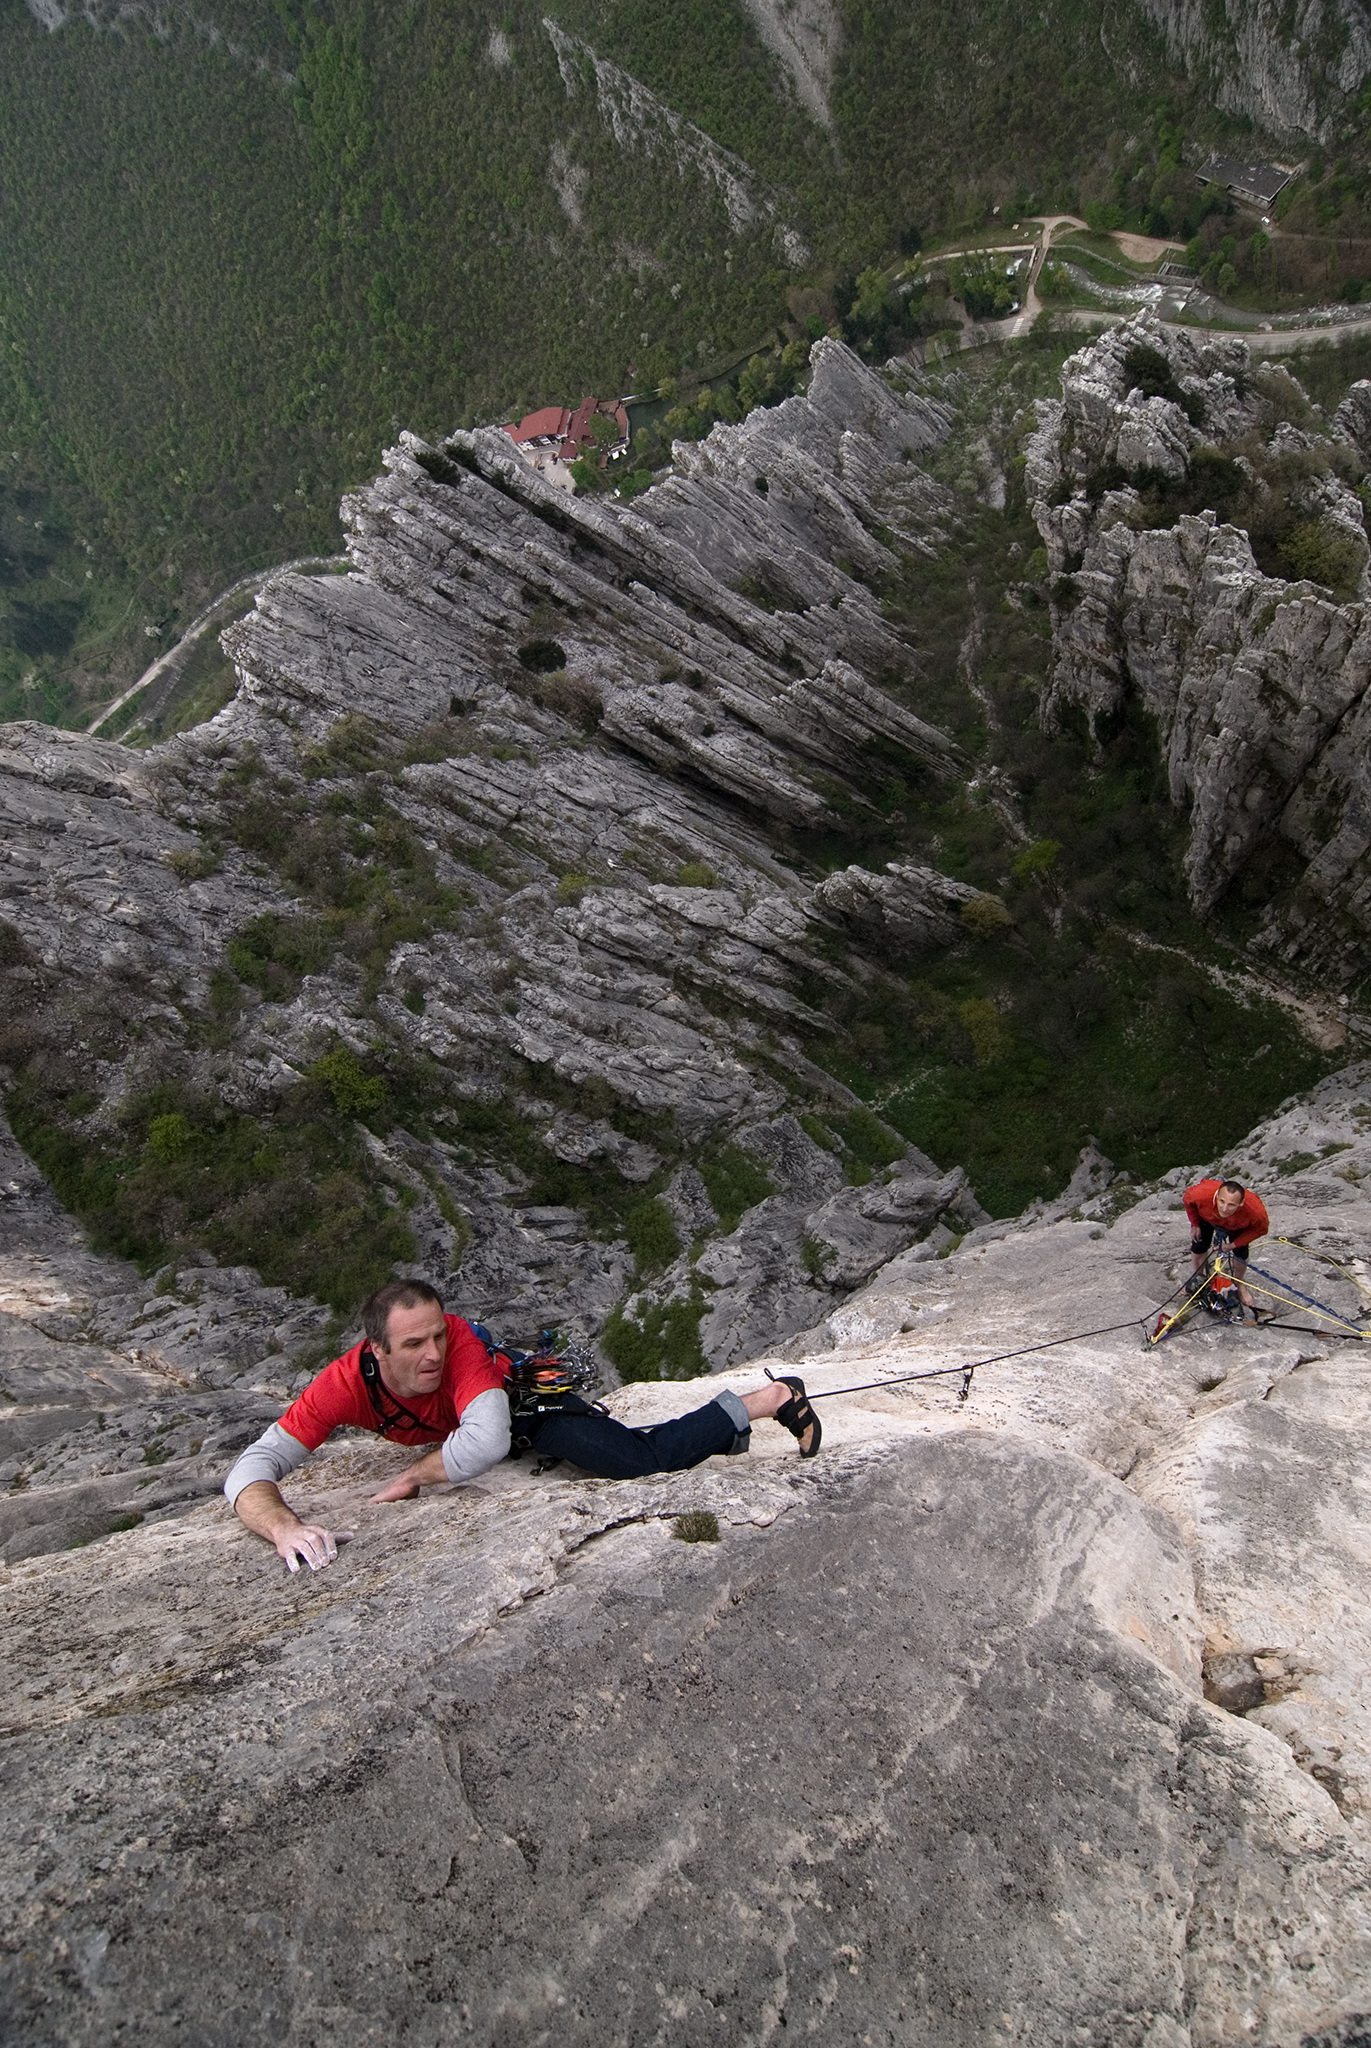 A rock climber on the Central Wall in the Vrasta Balkan National Park, Bulgaria